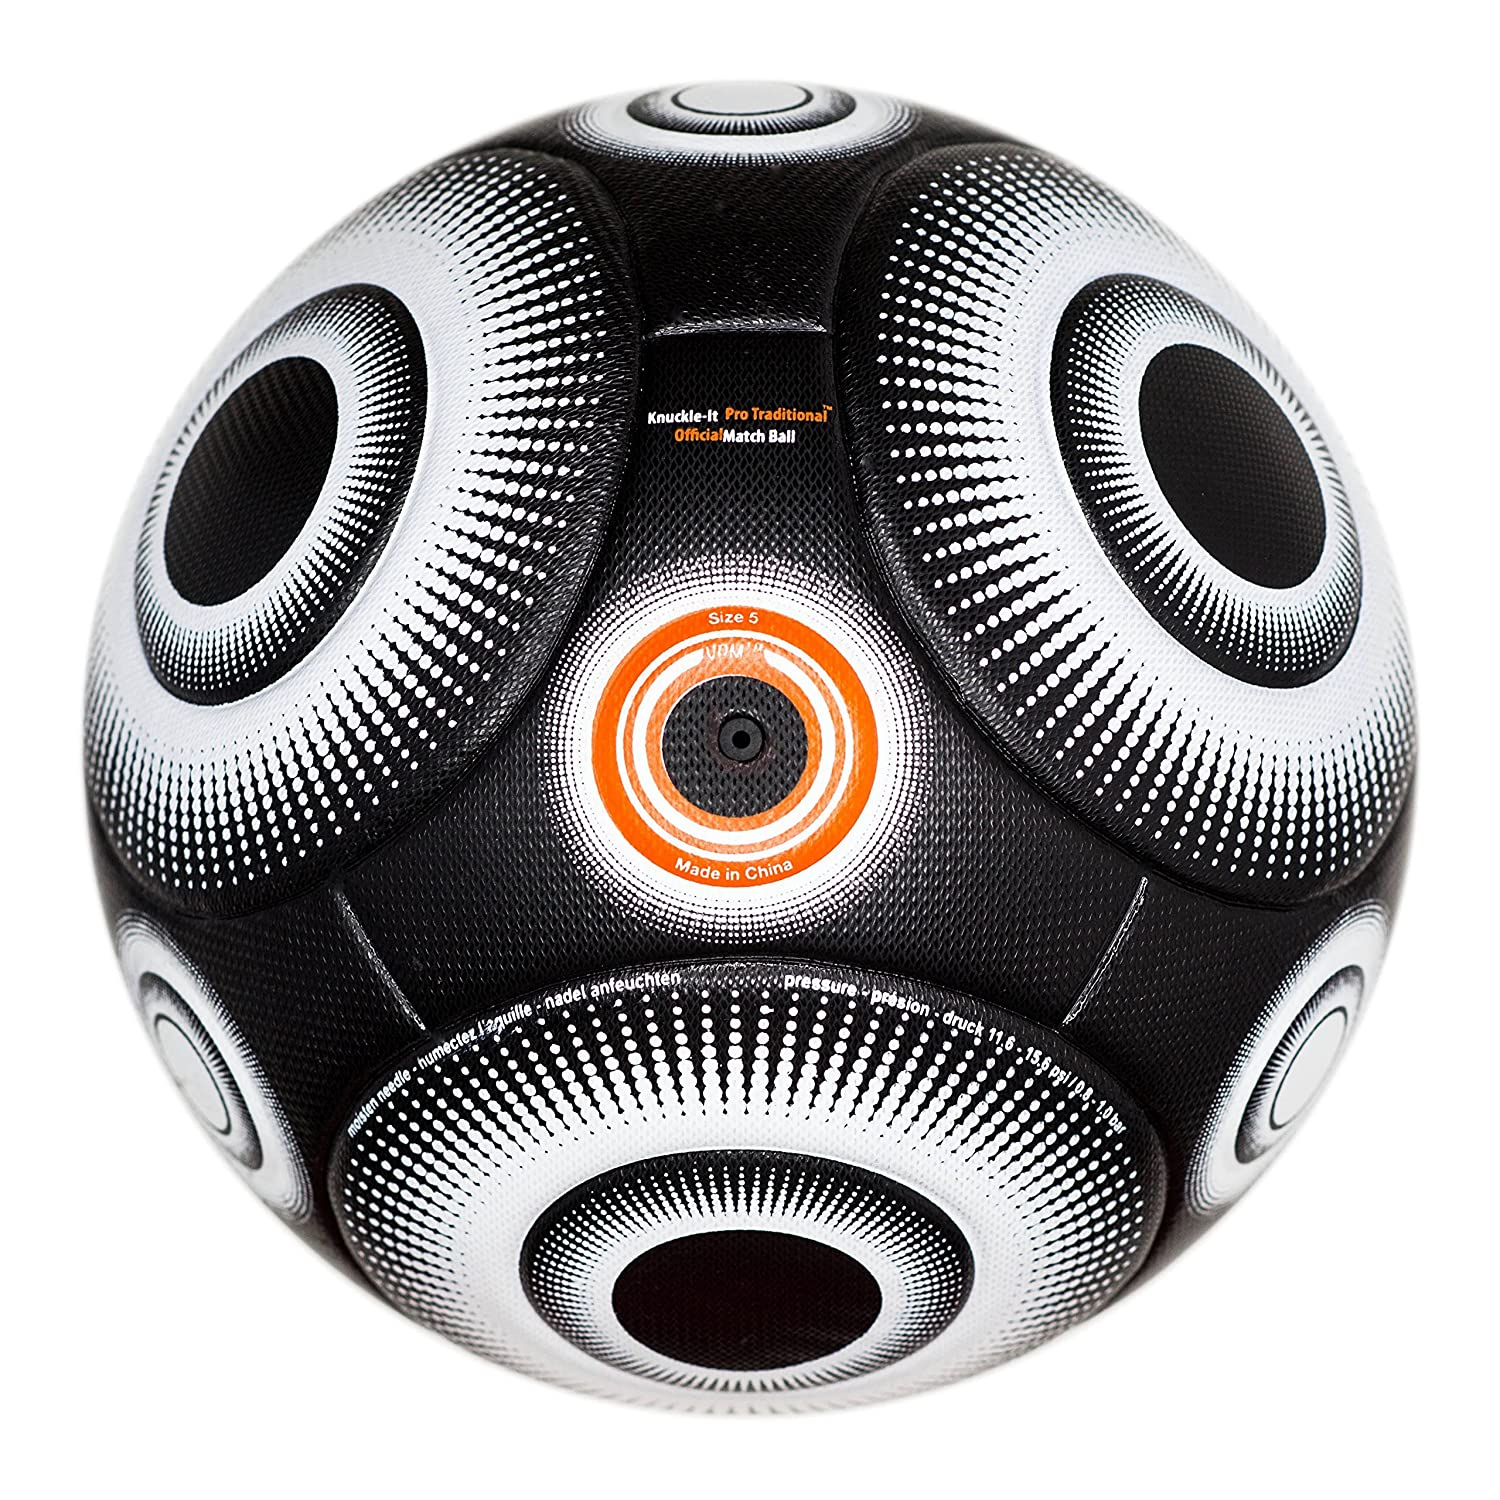 bend-itサッカー、knuckle-it Pro、サッカーボール、Official Match Ball with VPM and VRCテクノロジー B075DR2SNSBlack/White (Knuckle-It Pro Traditional) 5